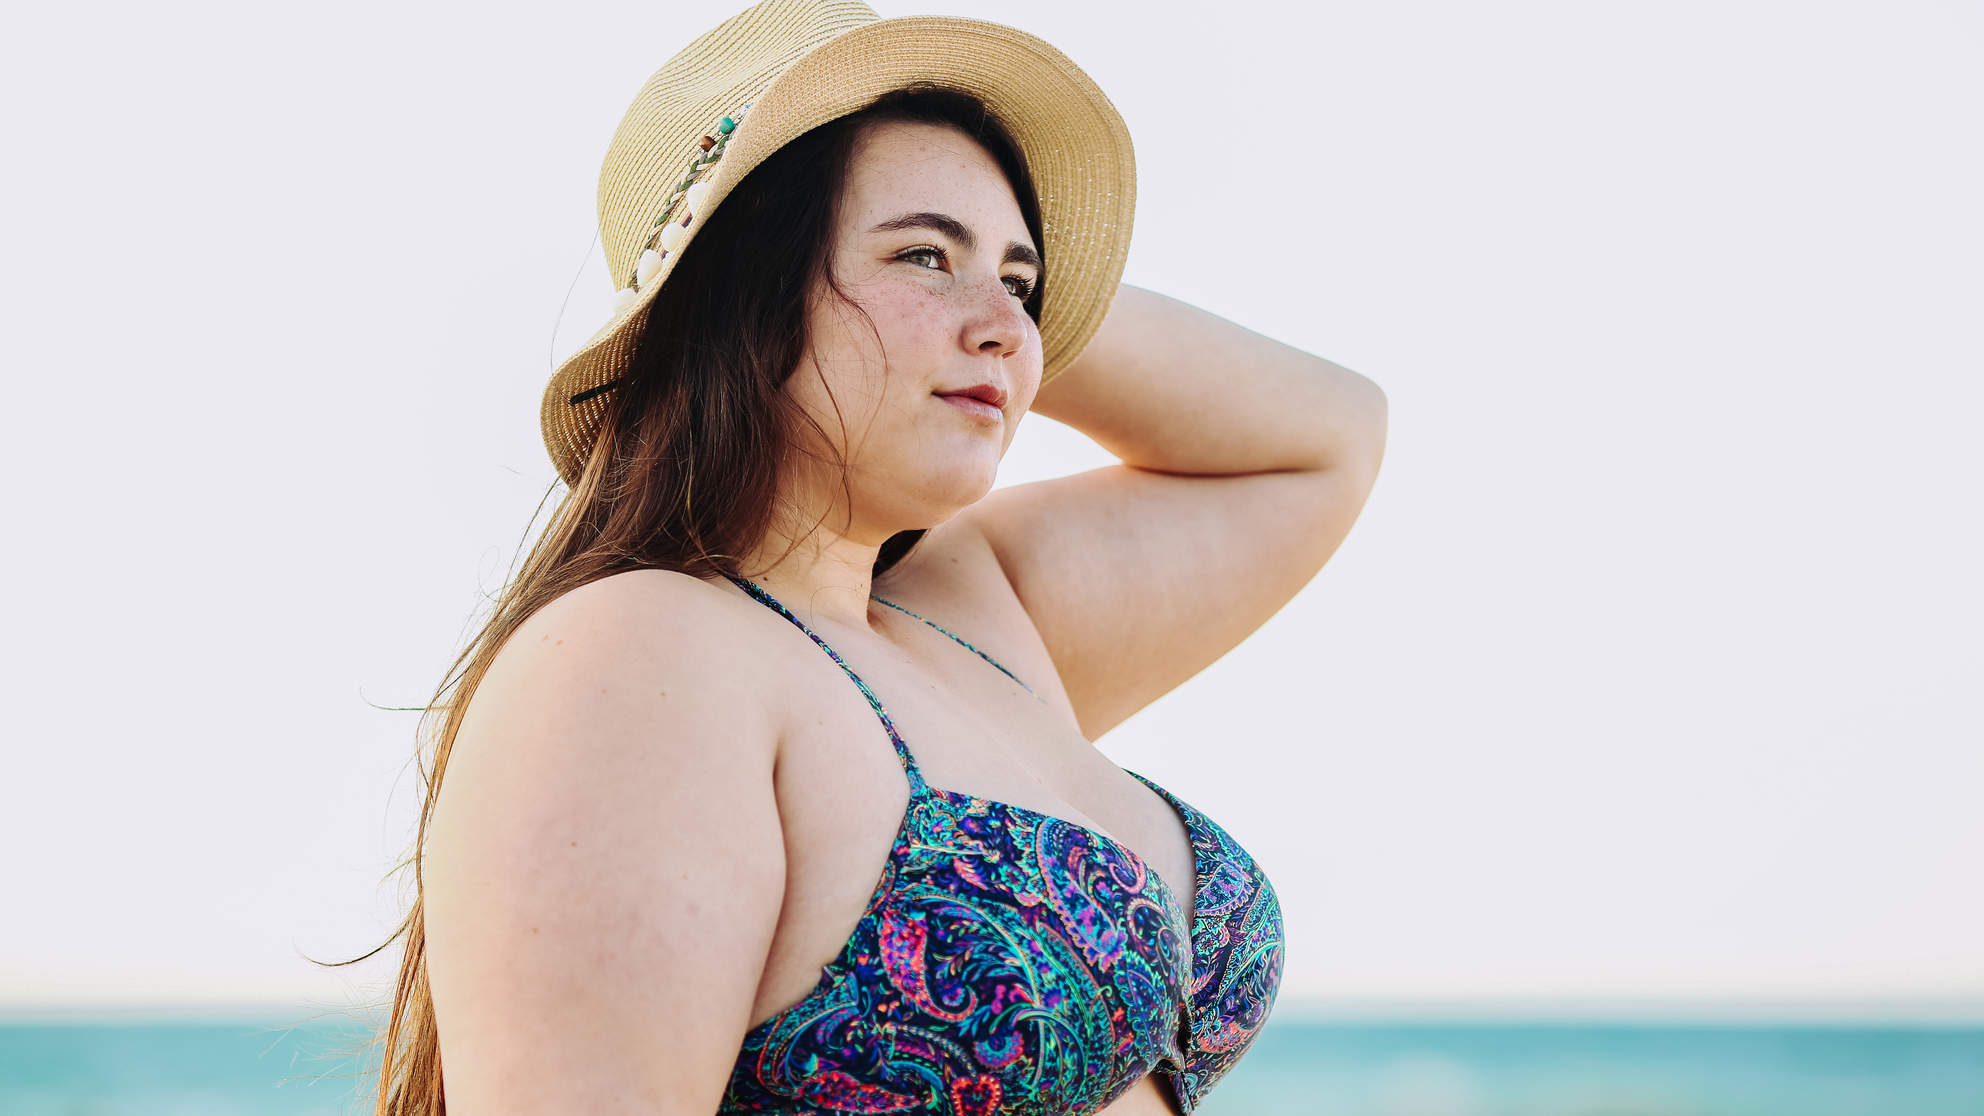 Newsflash: This Swimsuit Photo isn't Meant to Be a Body Positivity Message Just Because She's 'Fat'